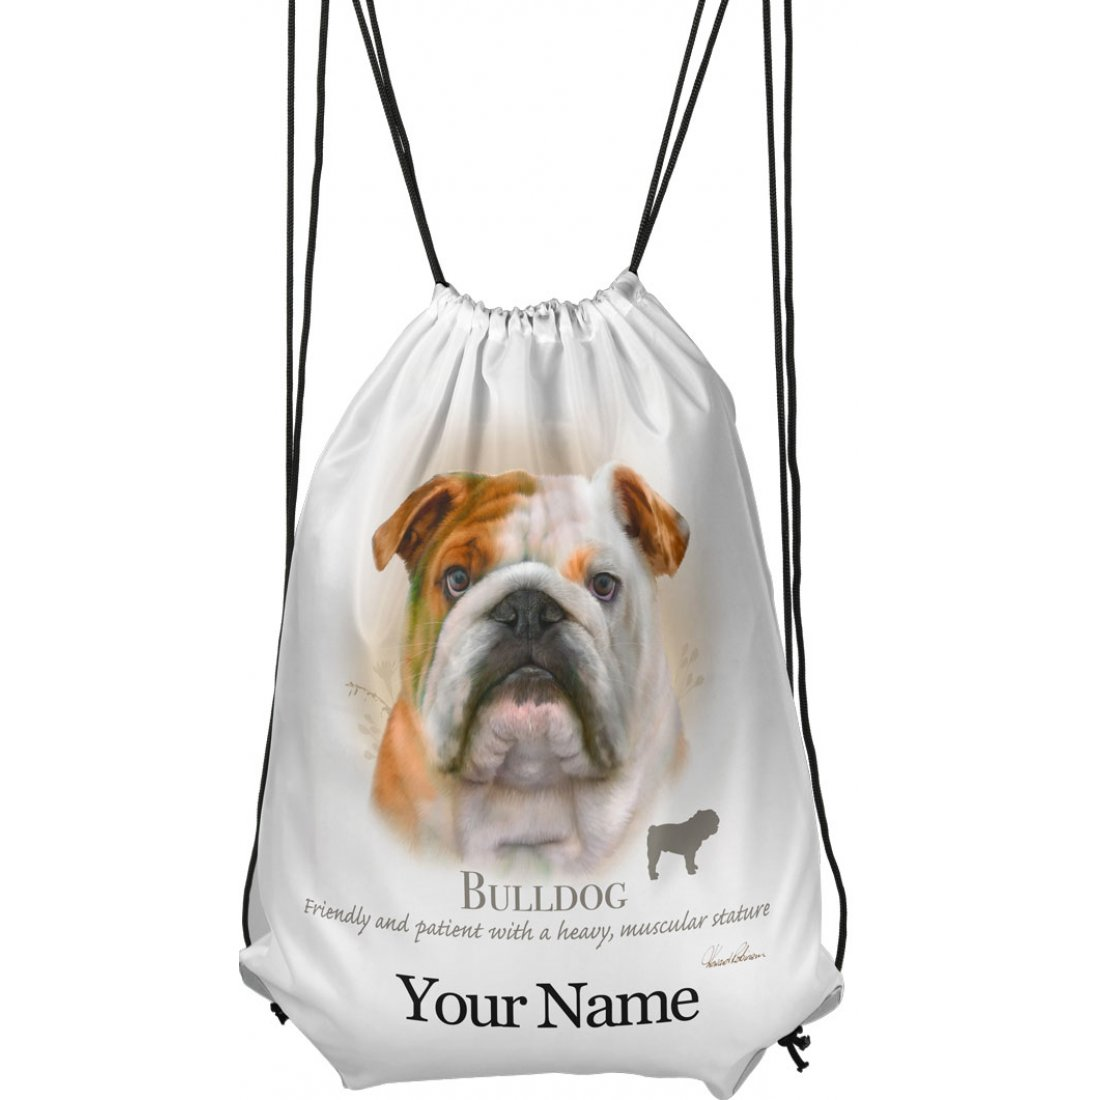 Personalised Bulldog Drawstring Gym Bag